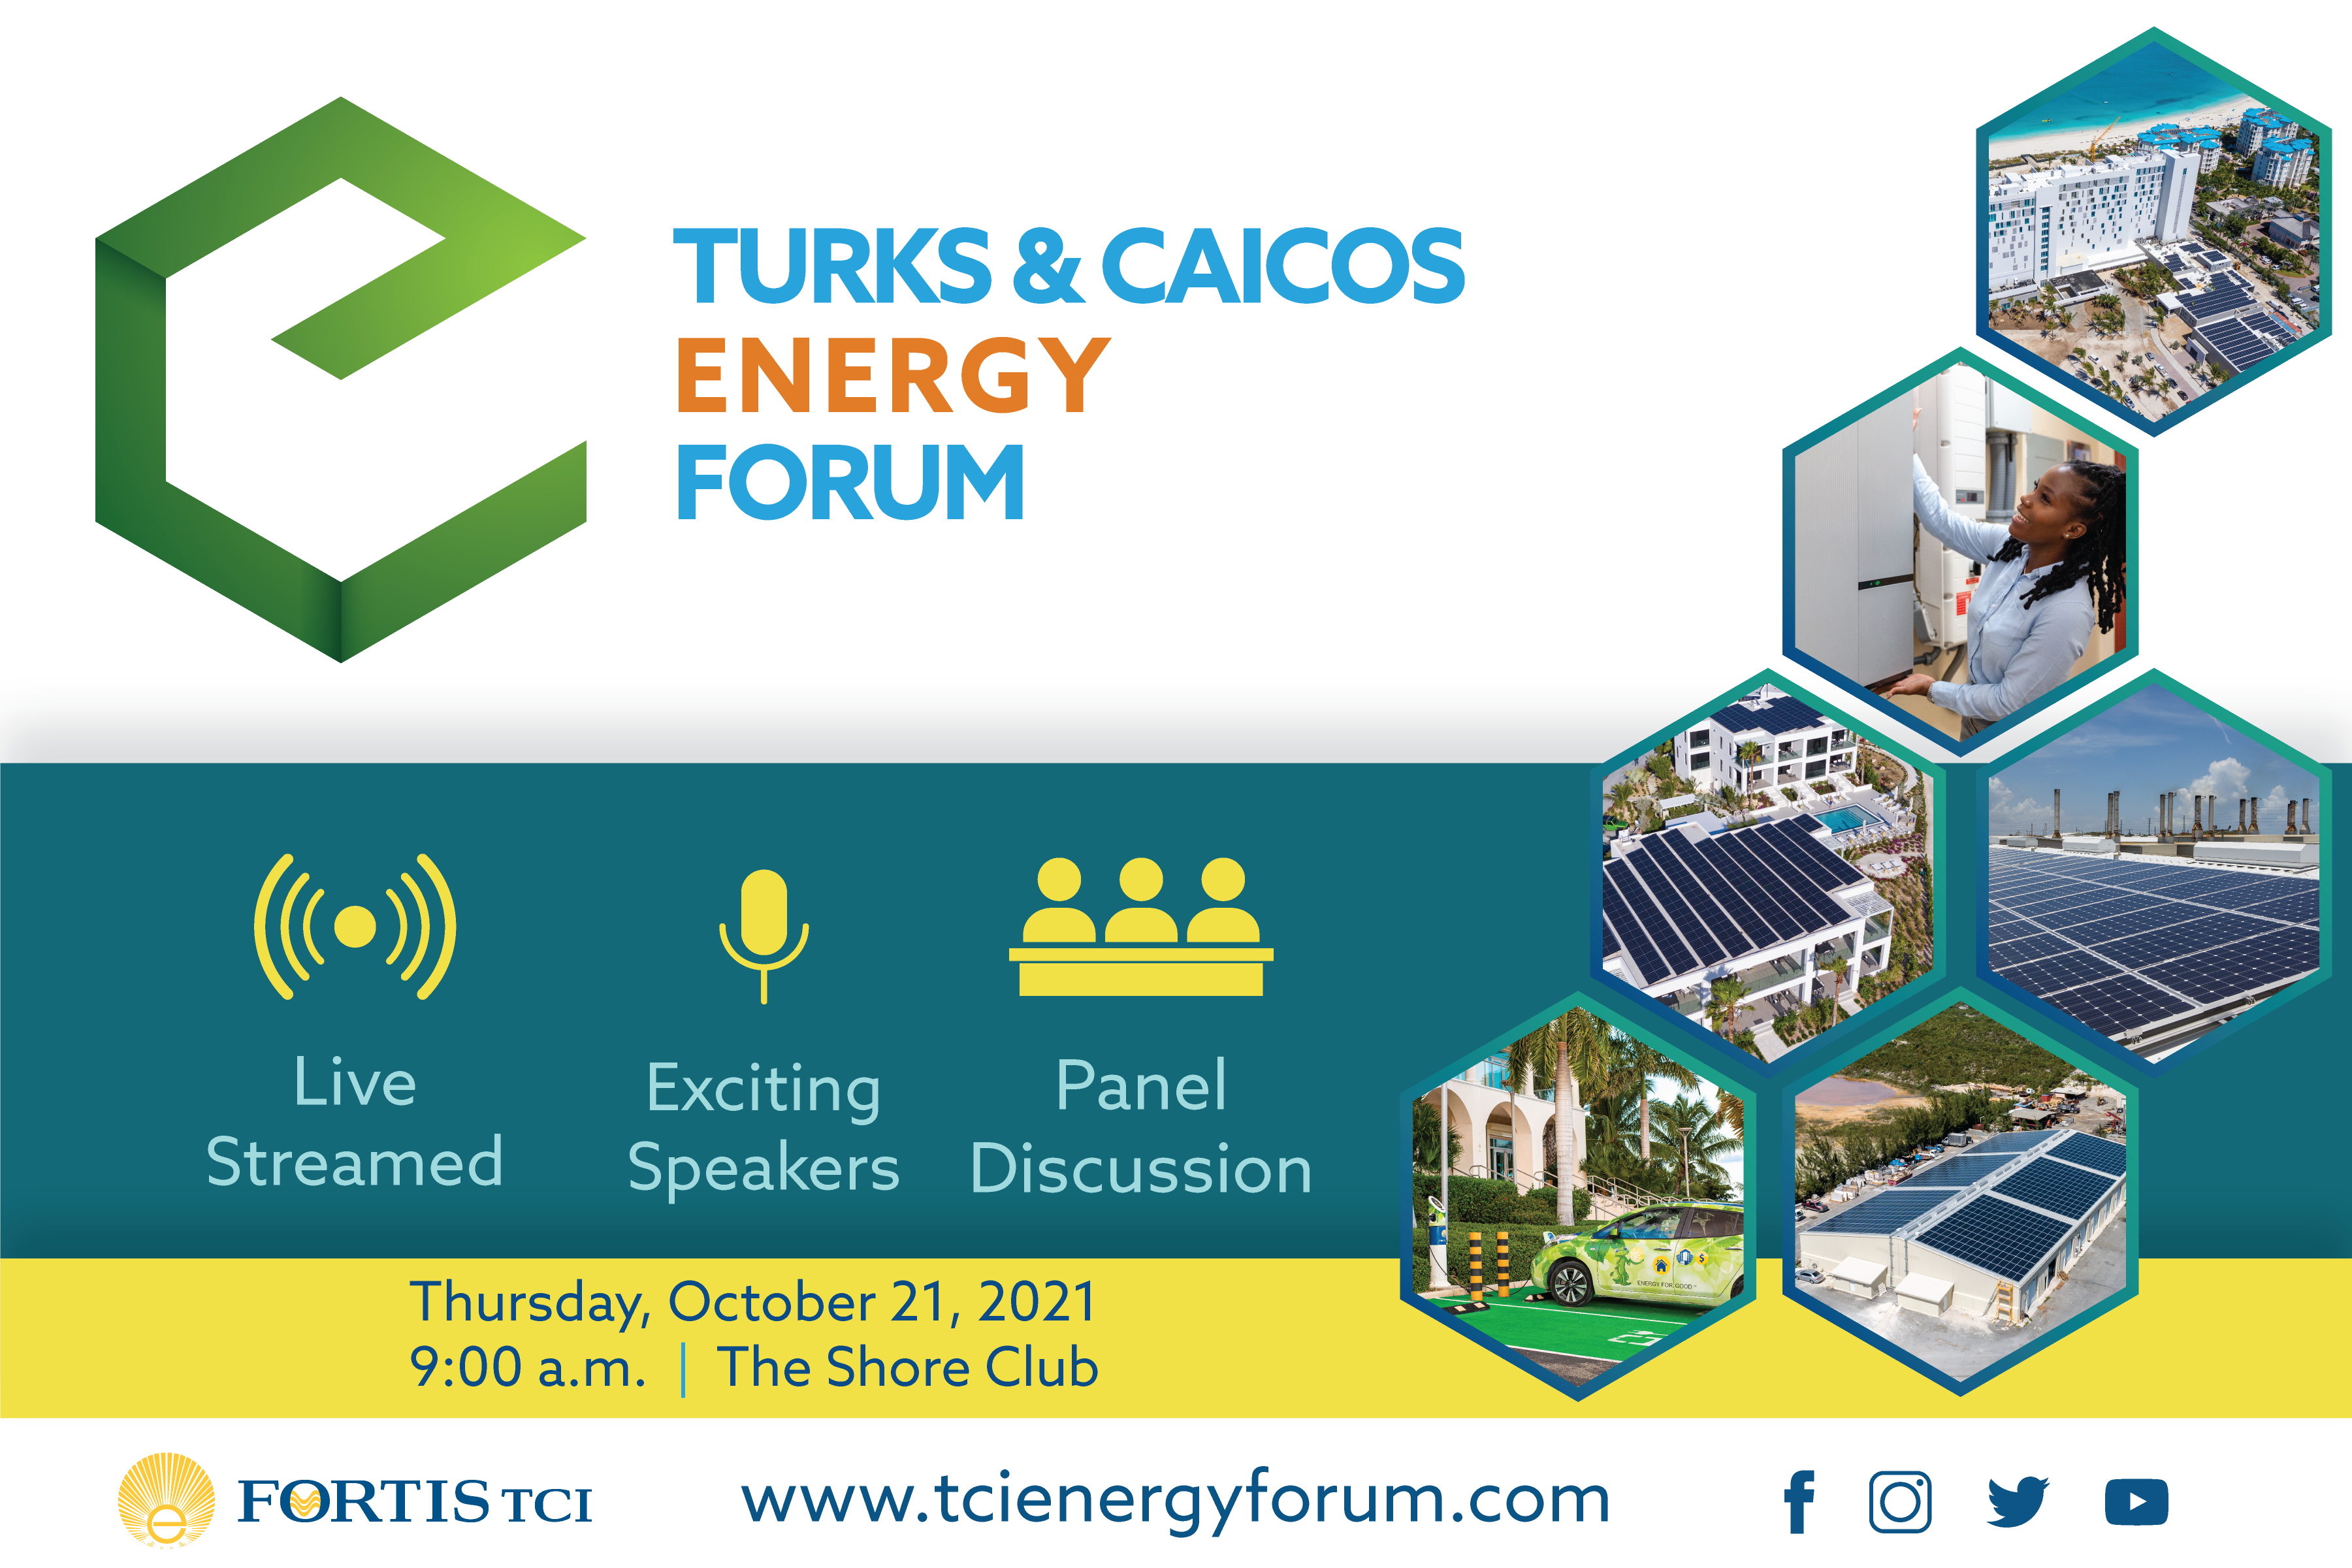 FortisTCI to Host Turks and Caicos Energy Forum on October 21